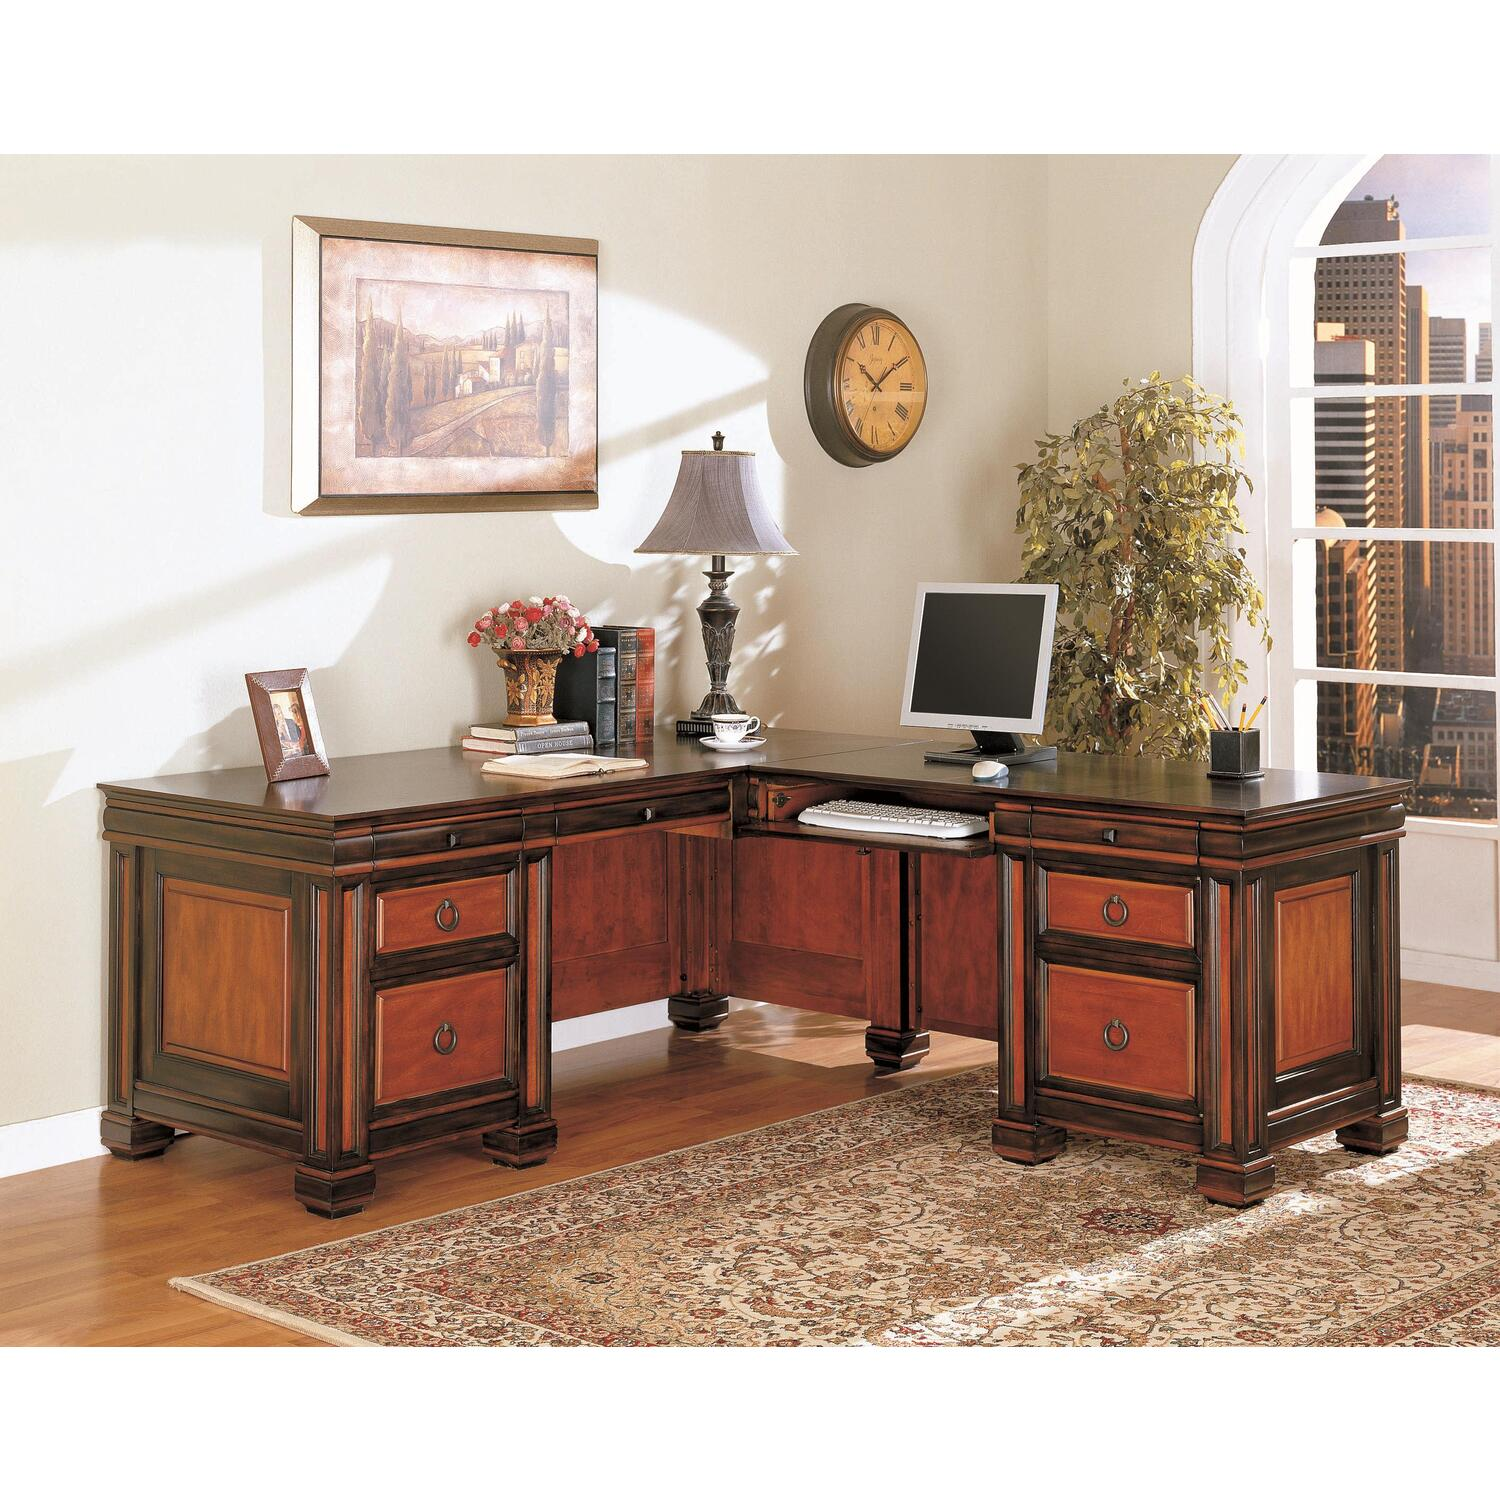 office l desk. Chomedey Traditional L-Shaped Desk - [800691] Office L